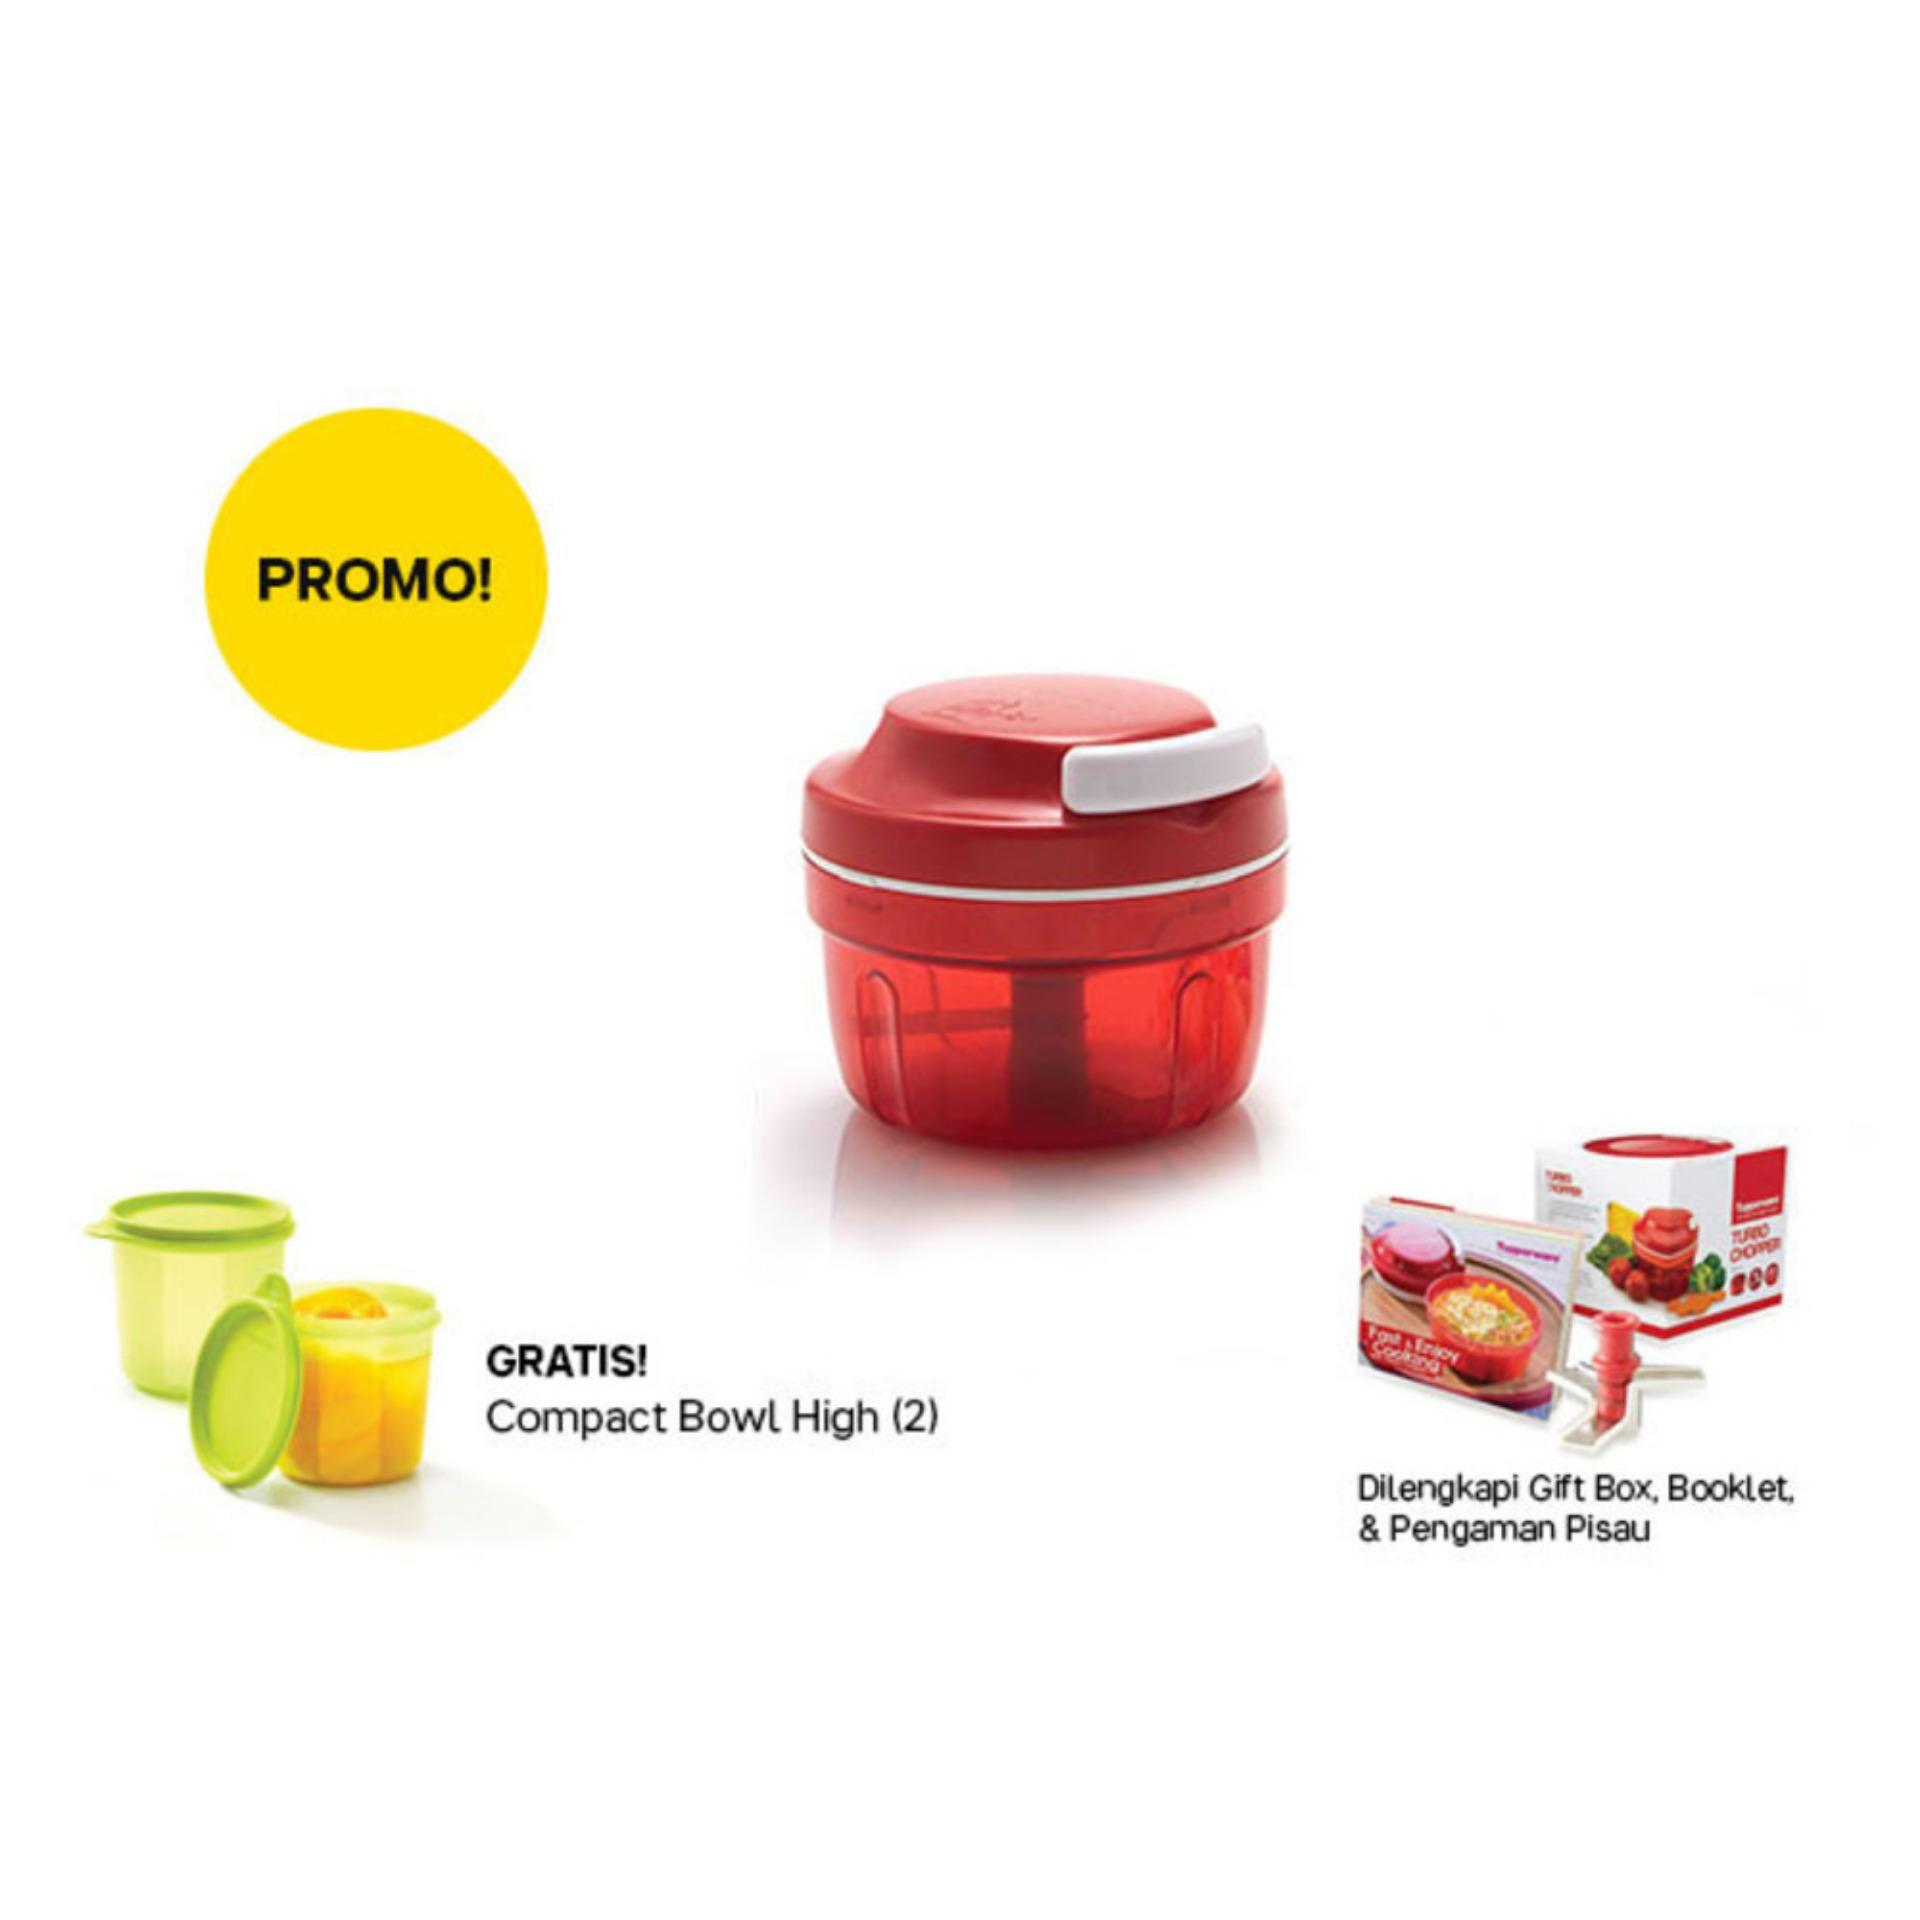 Fitur Tupperware Servalier Bowl 4pcs Toples Warna Warni Promo Turbo Chopper 1 Red With Free Compact High 2pcs